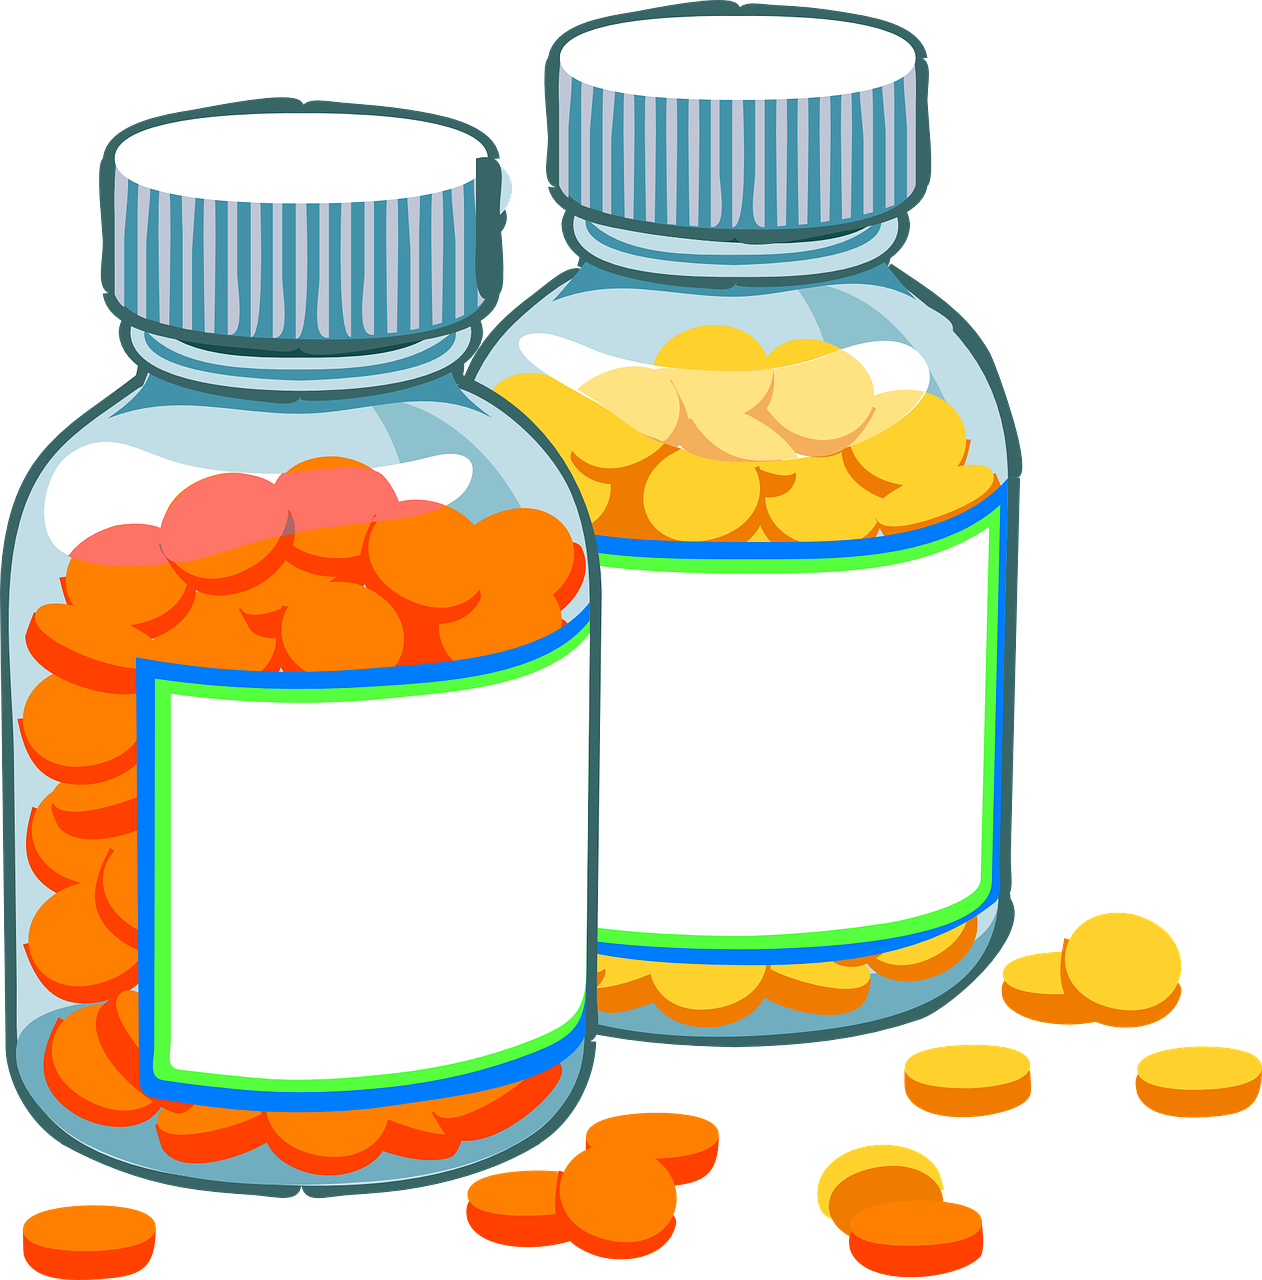 clip free Tablet safety free on. Medication clipart